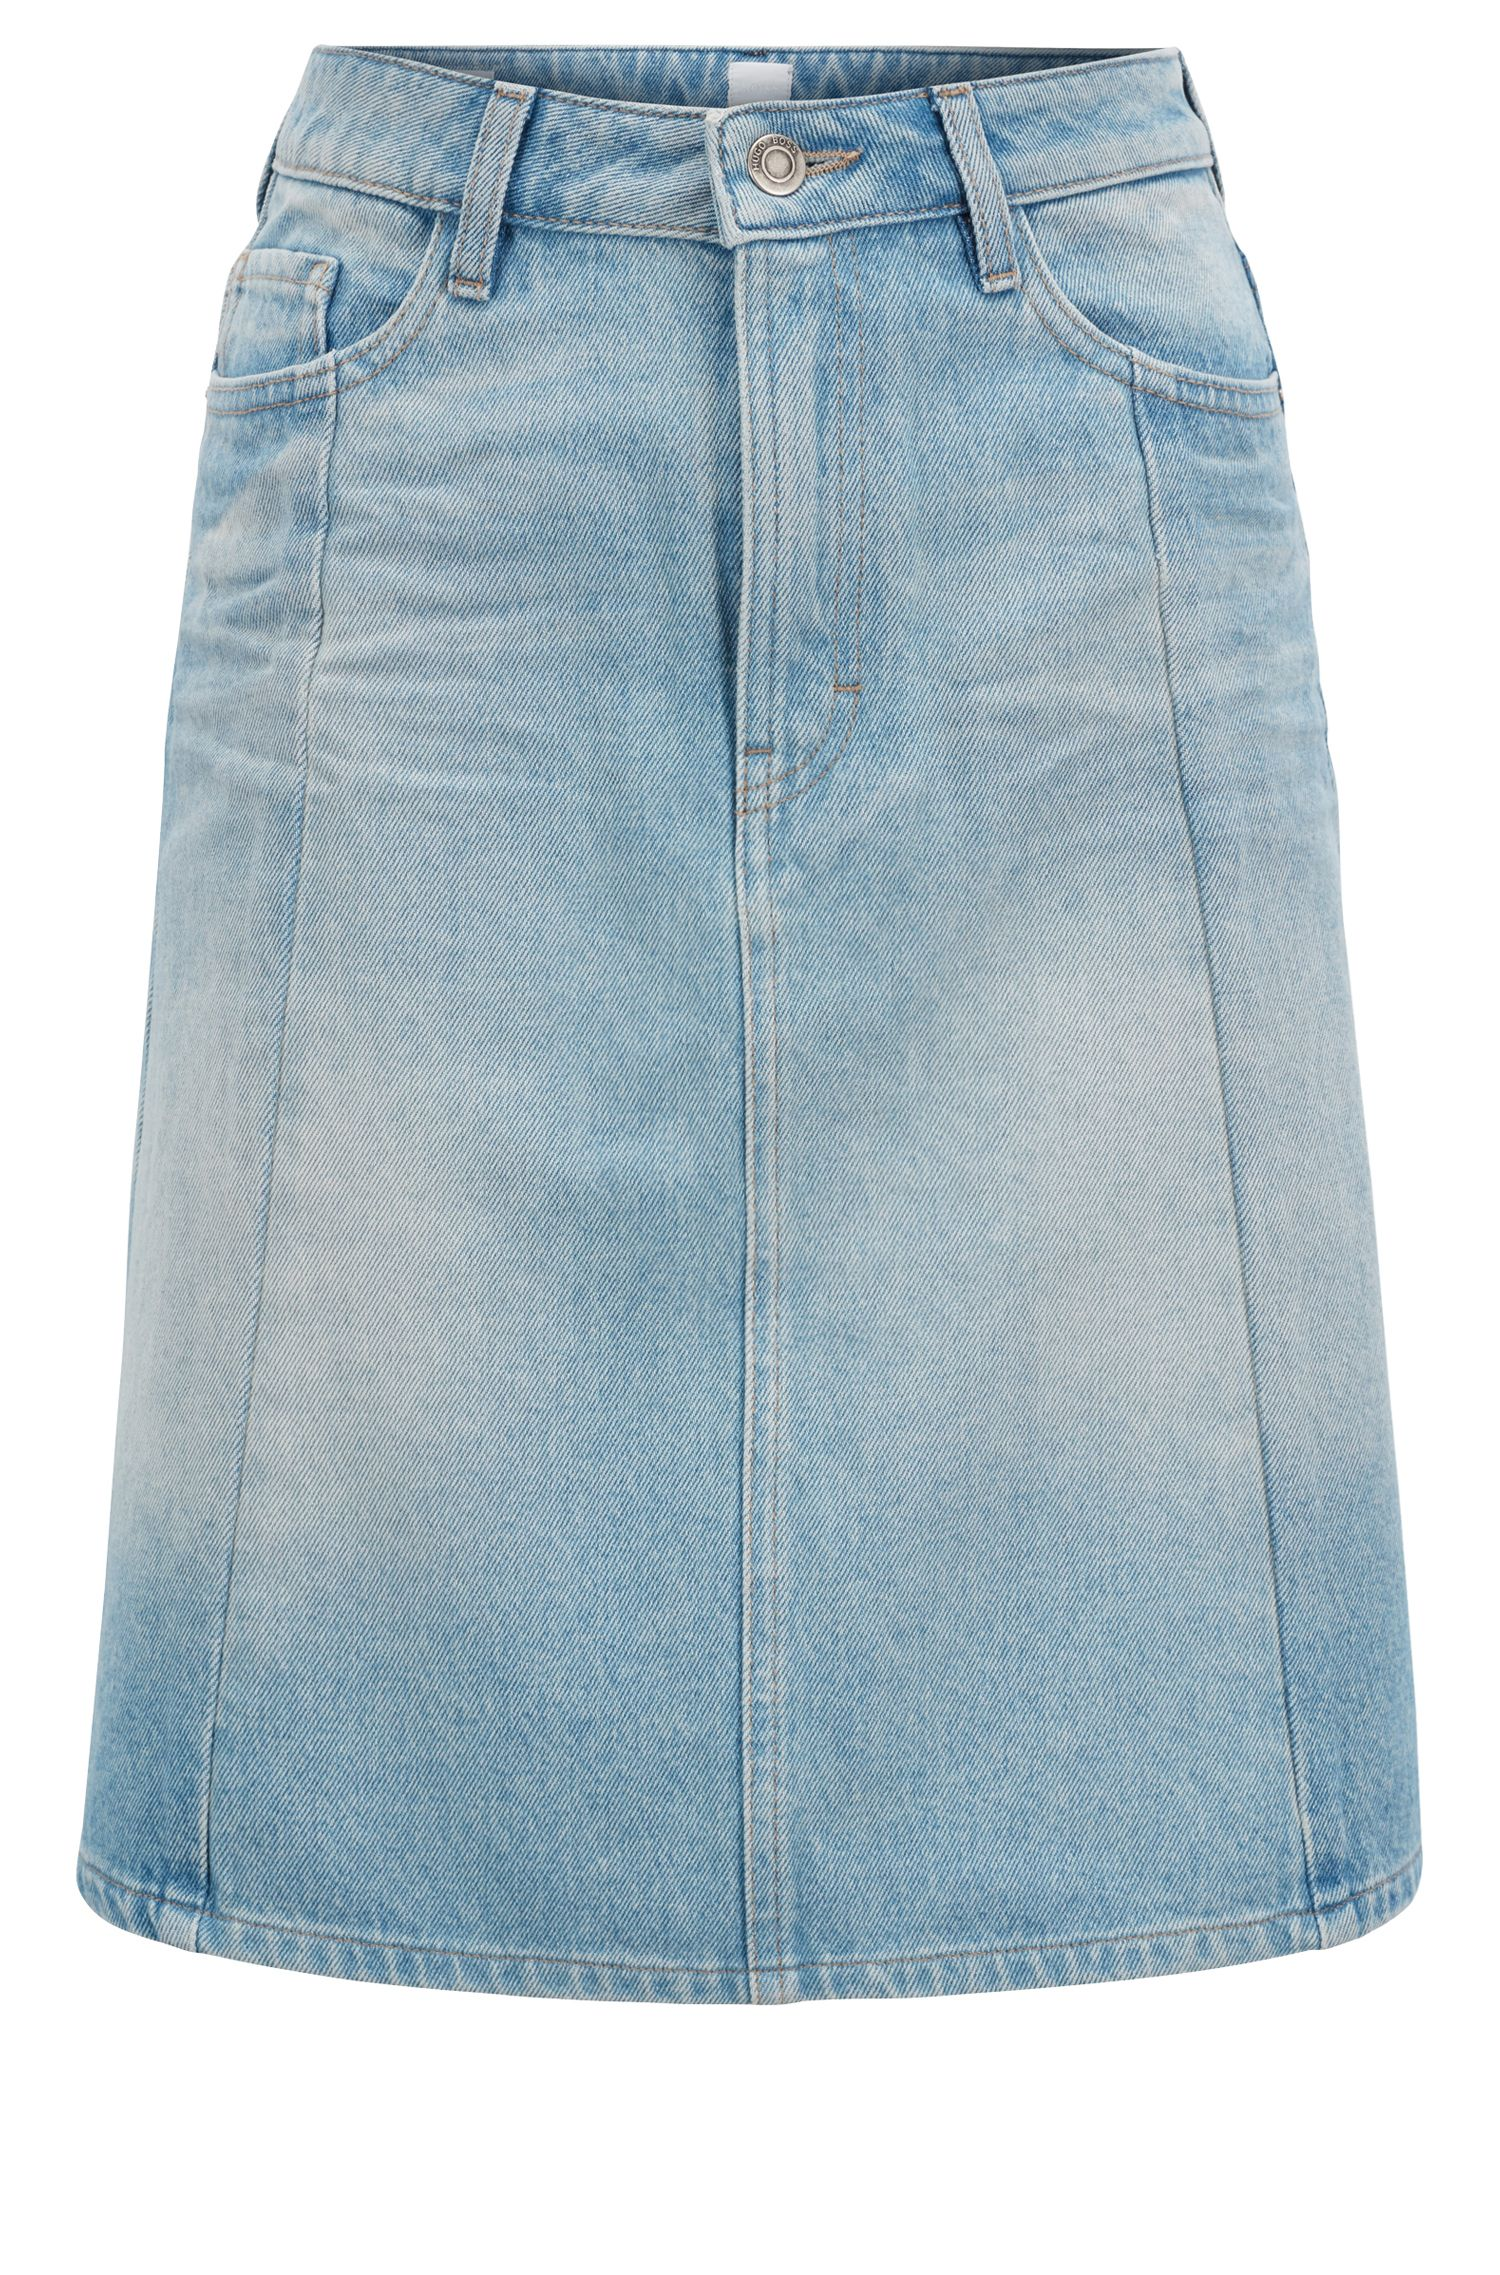 Gonna dalla linea svasata in denim pesante effetto vintage, Blu